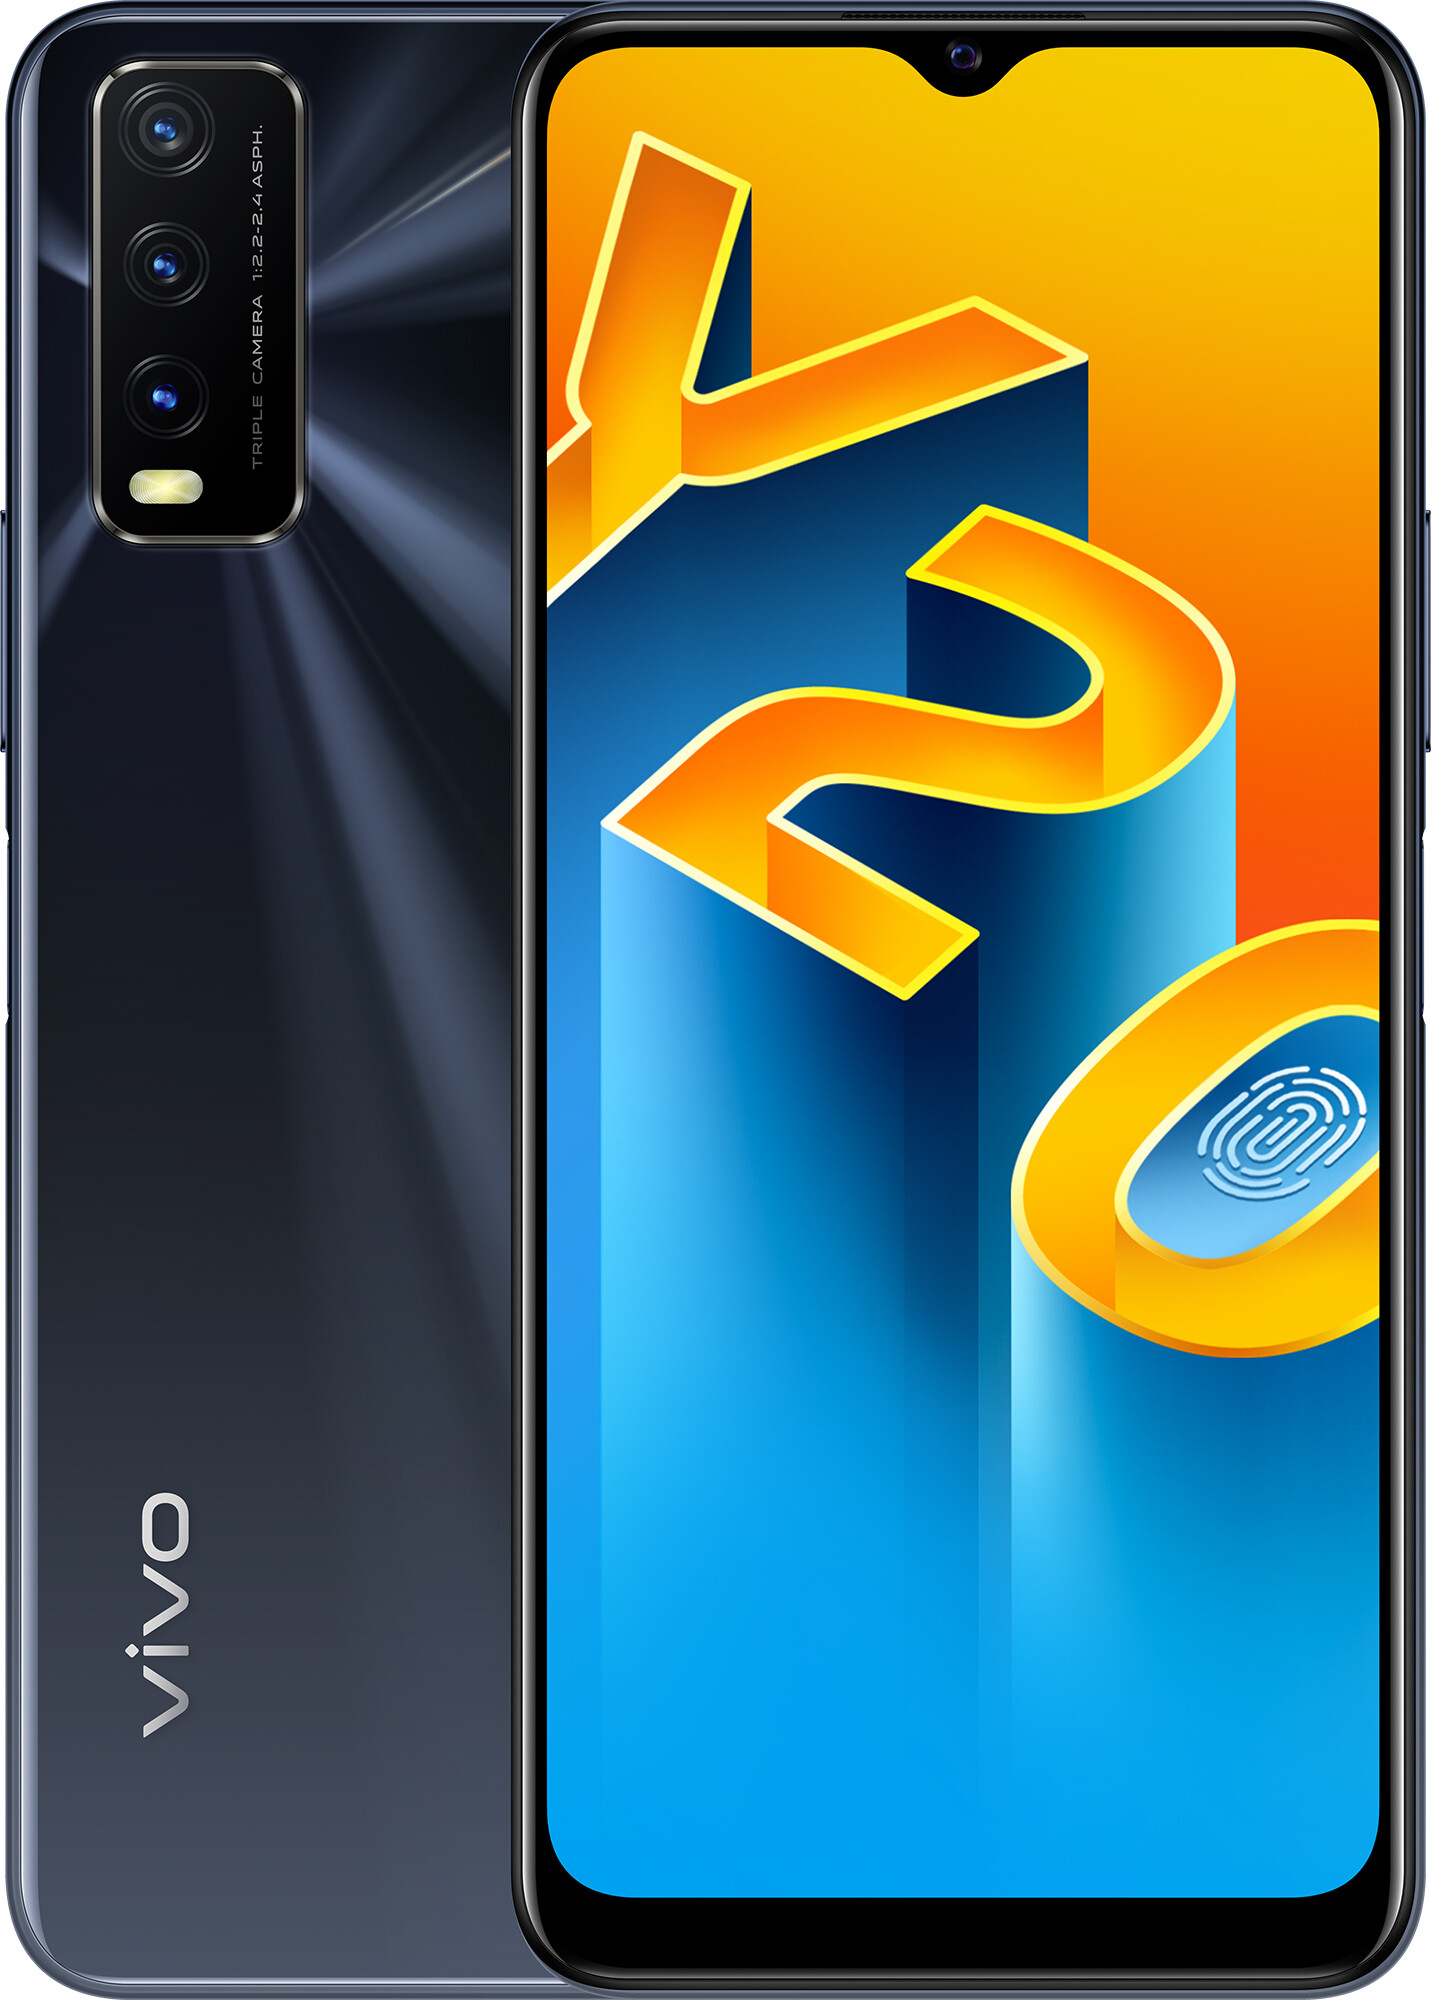 Смартфон Vivo Y20 4/64GB (Obsidian Black) UA-UCRF